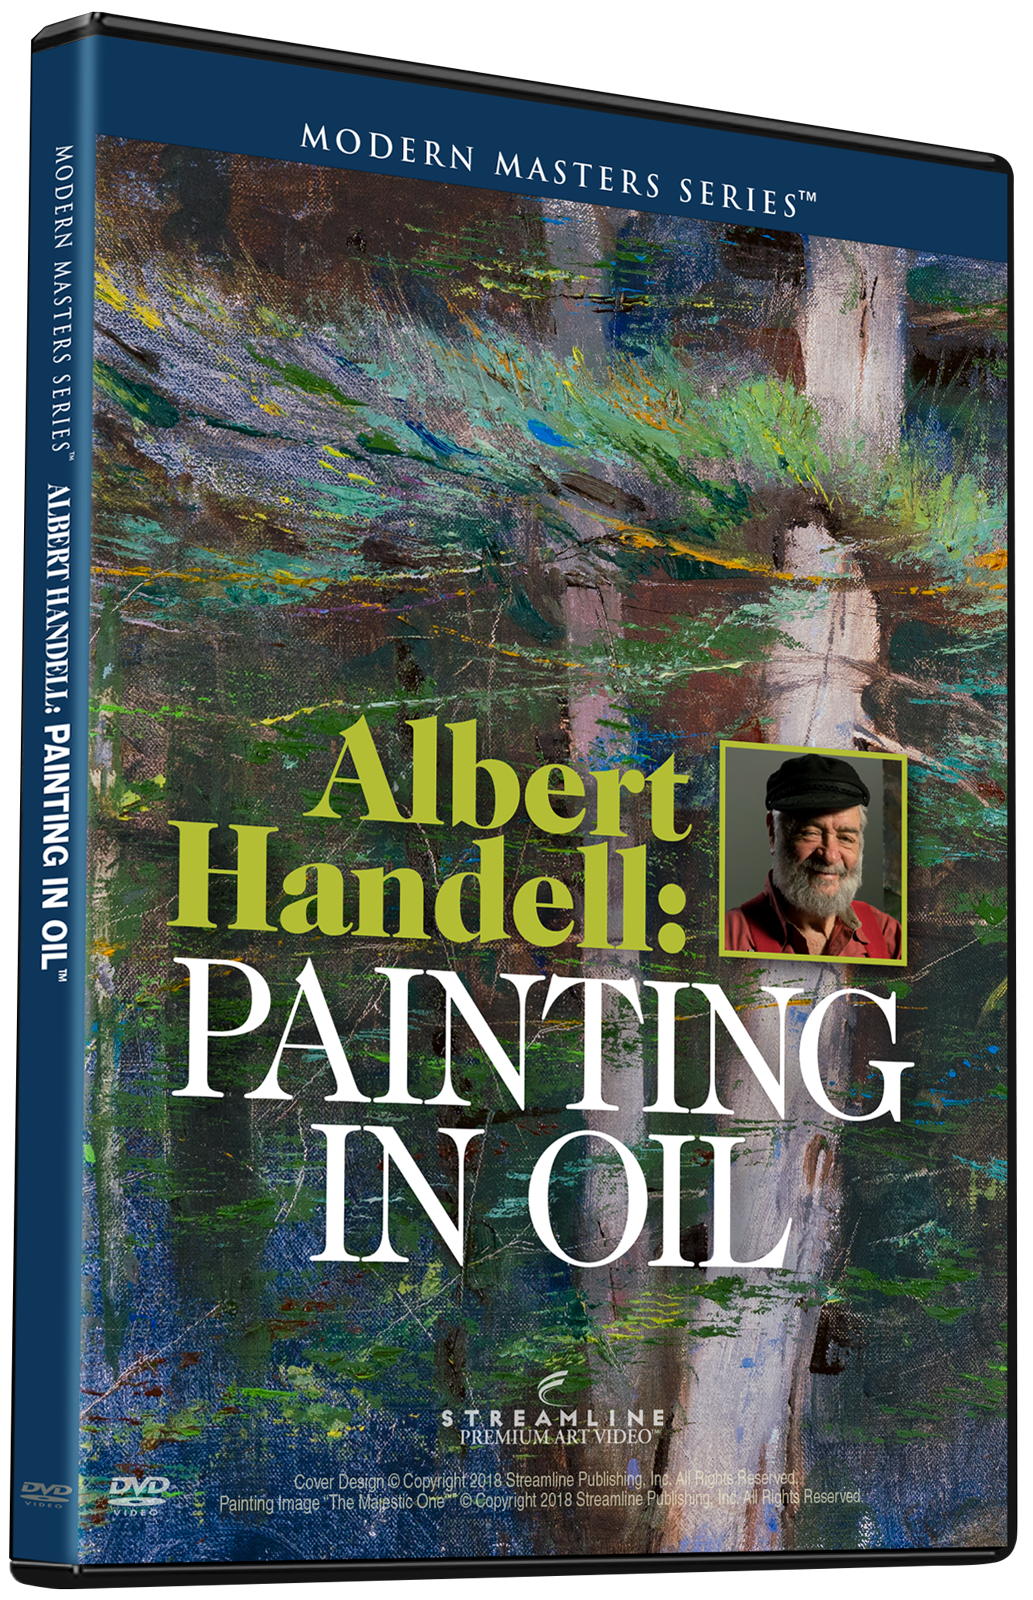 Albert Handell: Painting in Oil